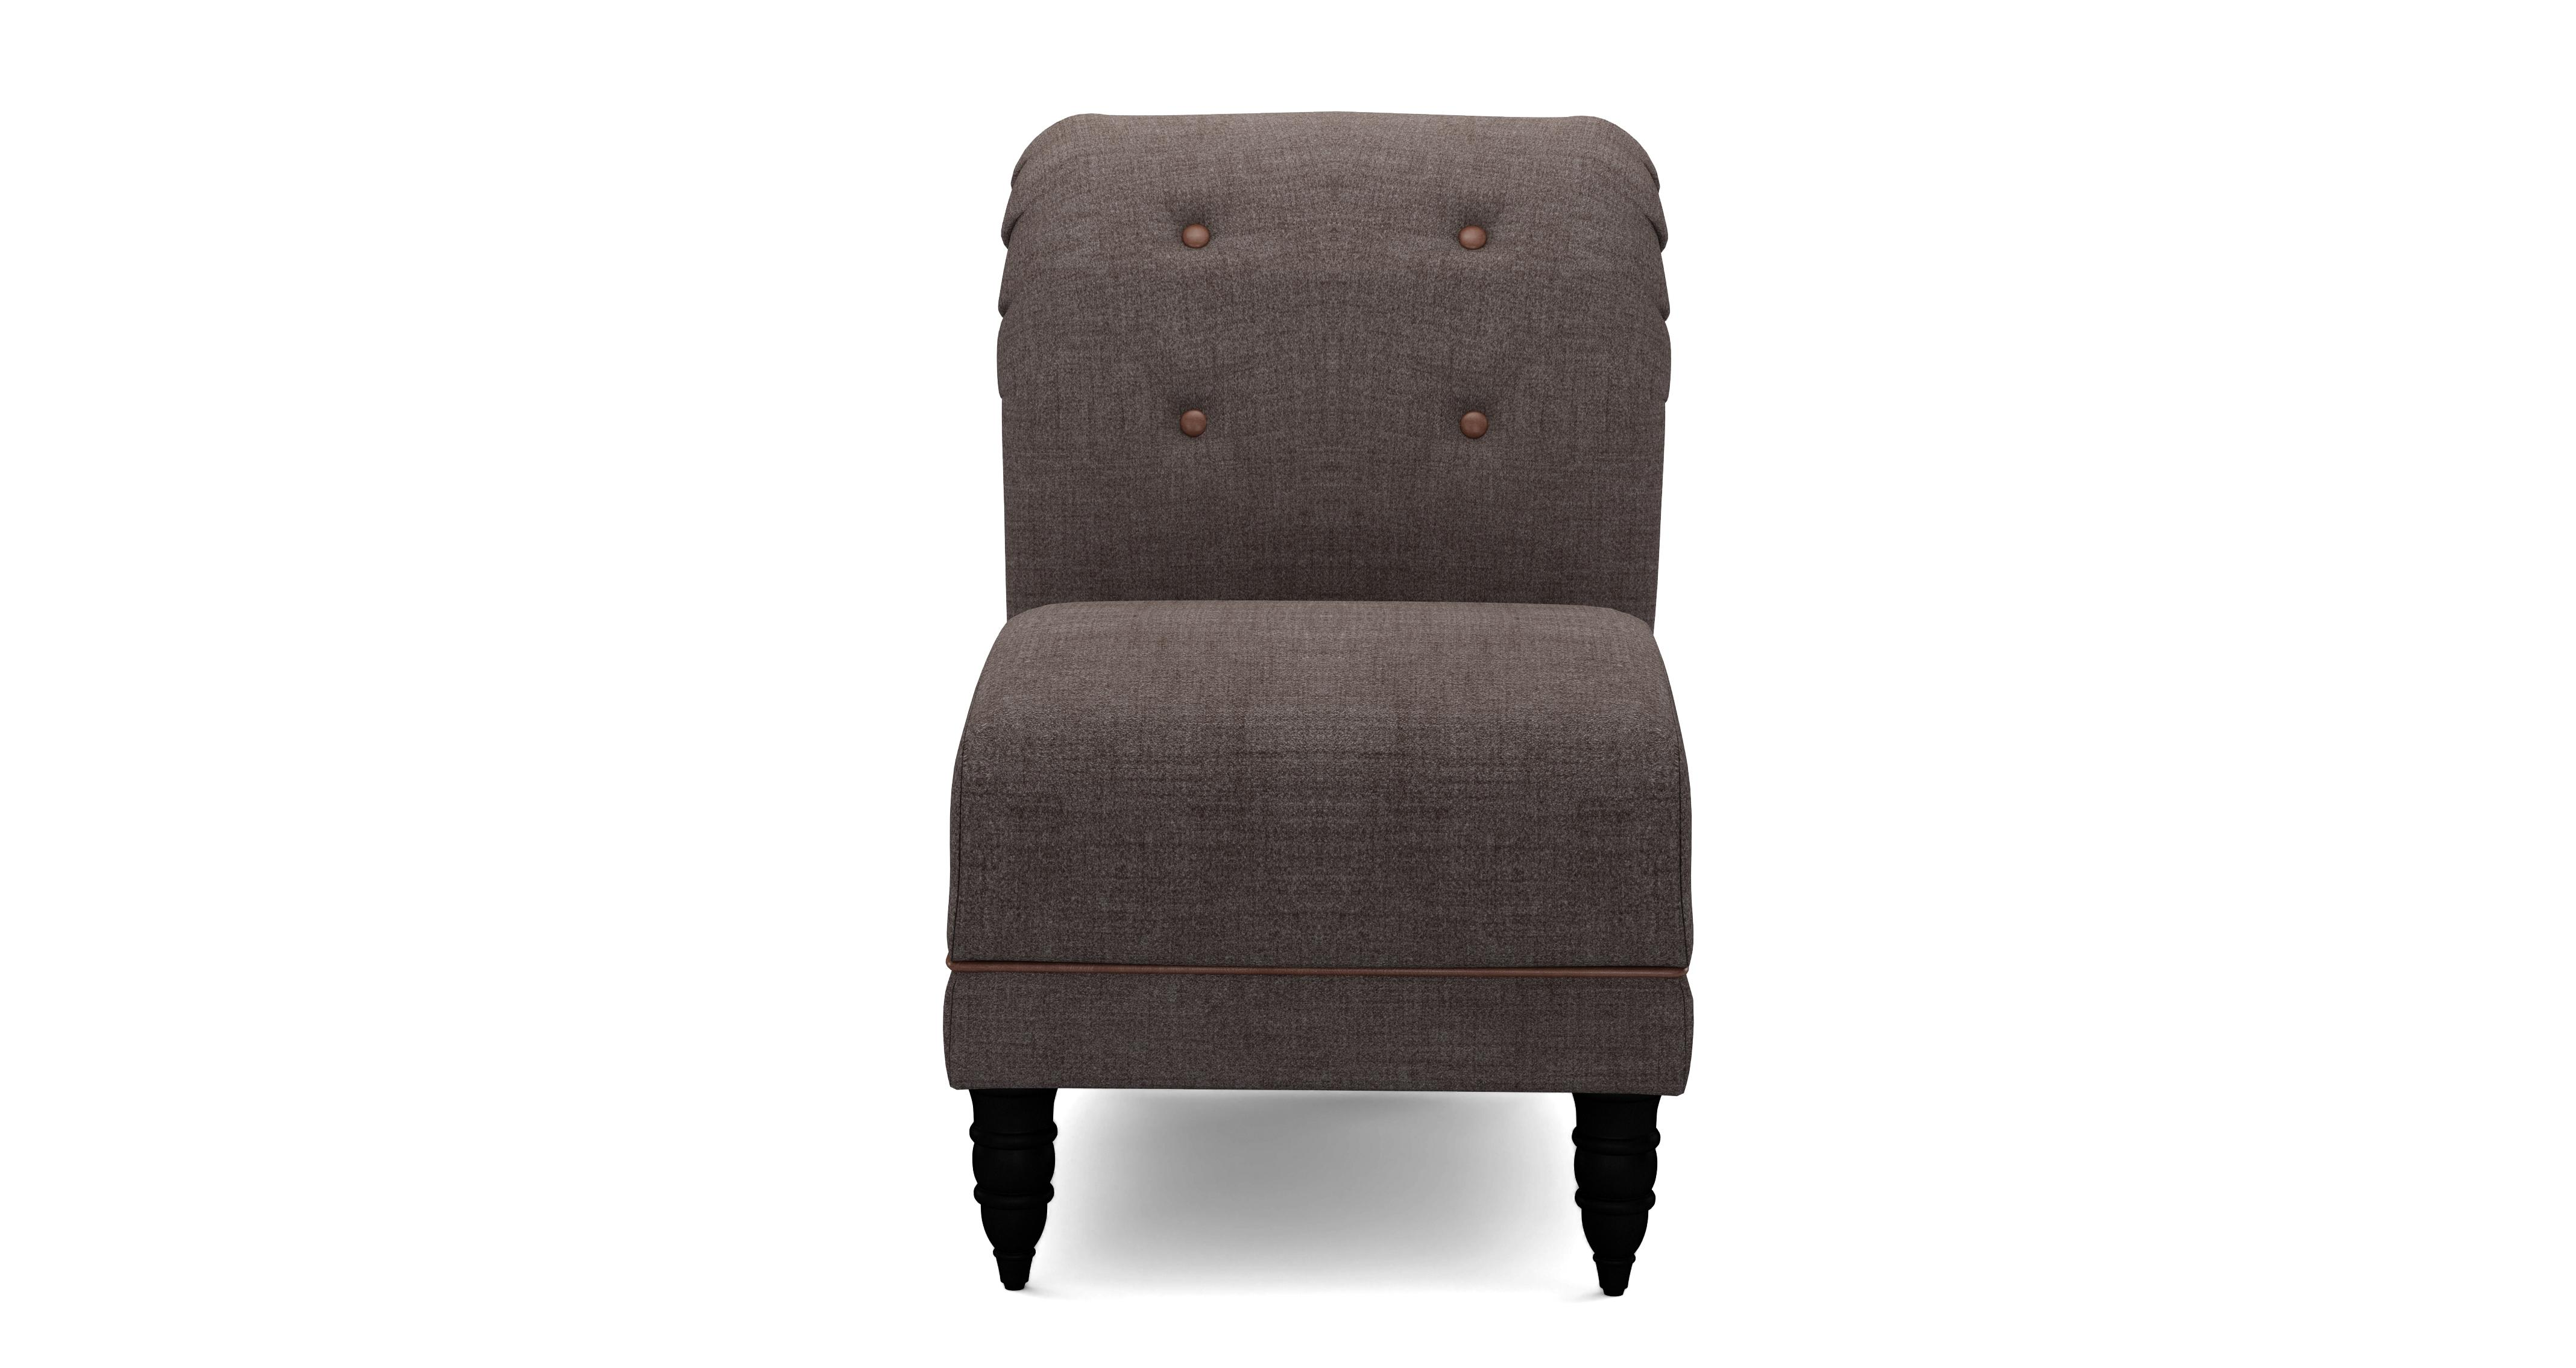 dfs moray sofa reviews reclining chaise lounge concerto accent chair alternative fabric